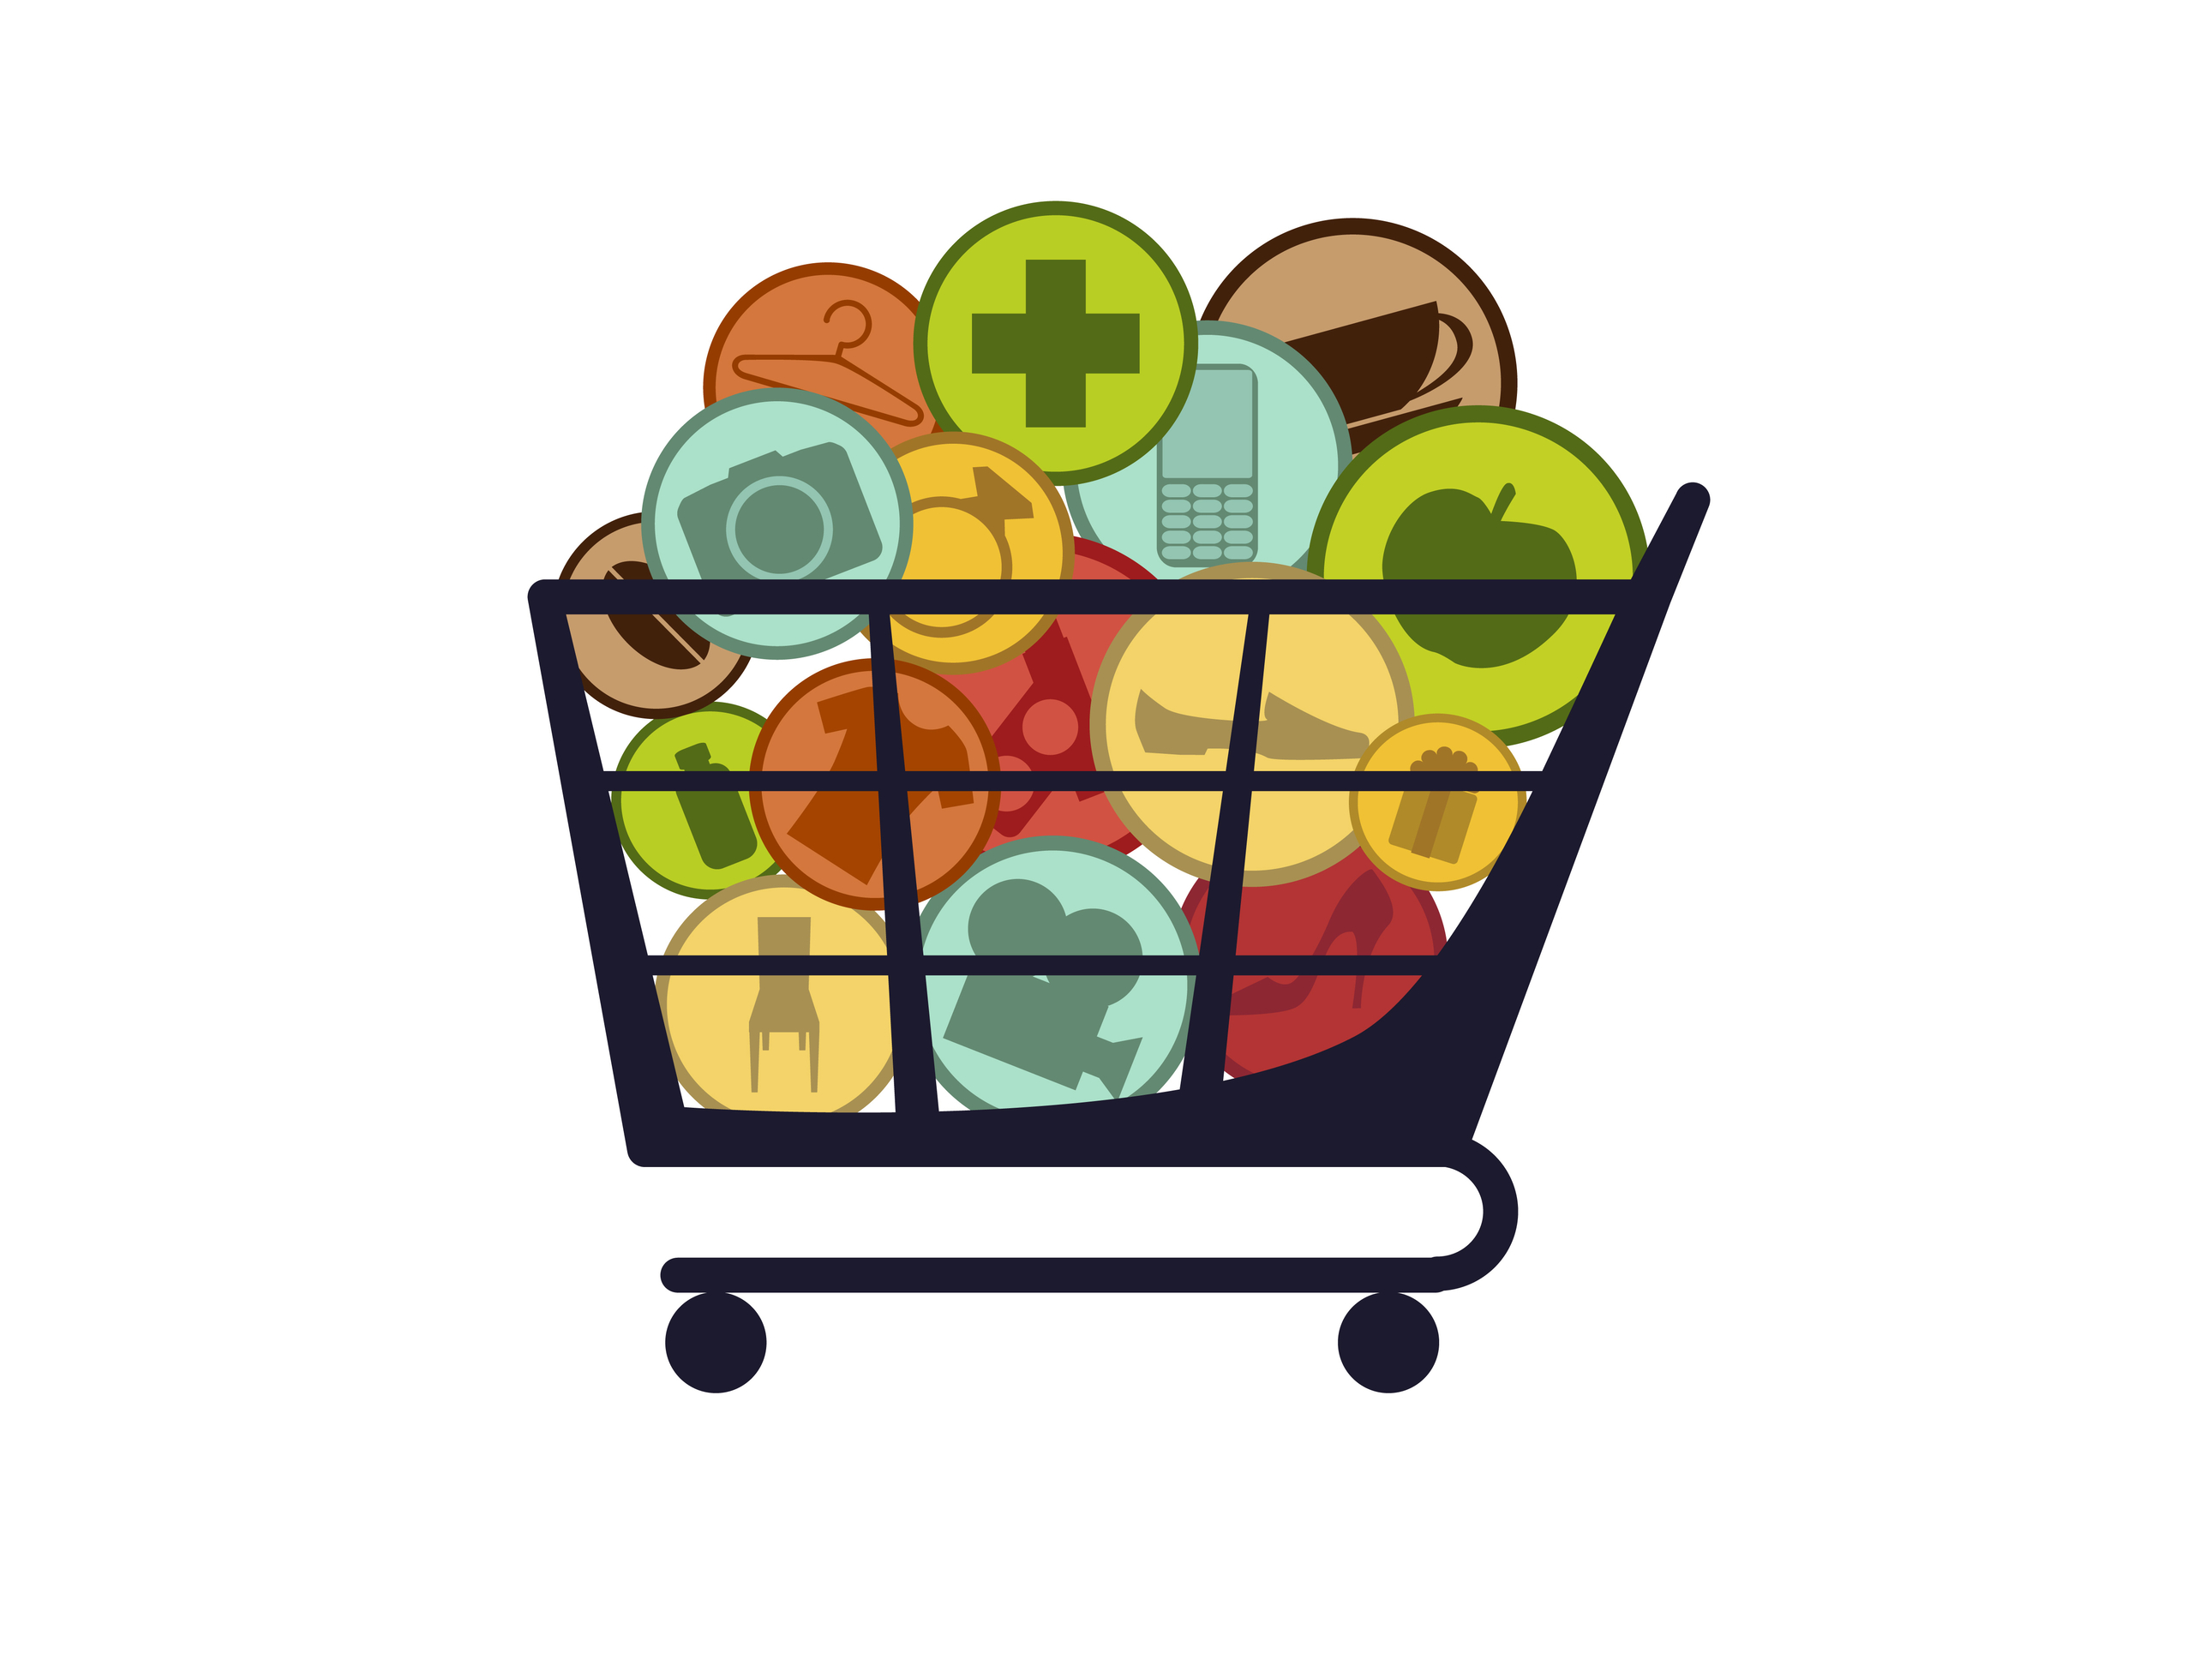 Consumer expenditures during COVID-19: An exploratory analysis of the effects of changing consumption patterns on consumer price indexes